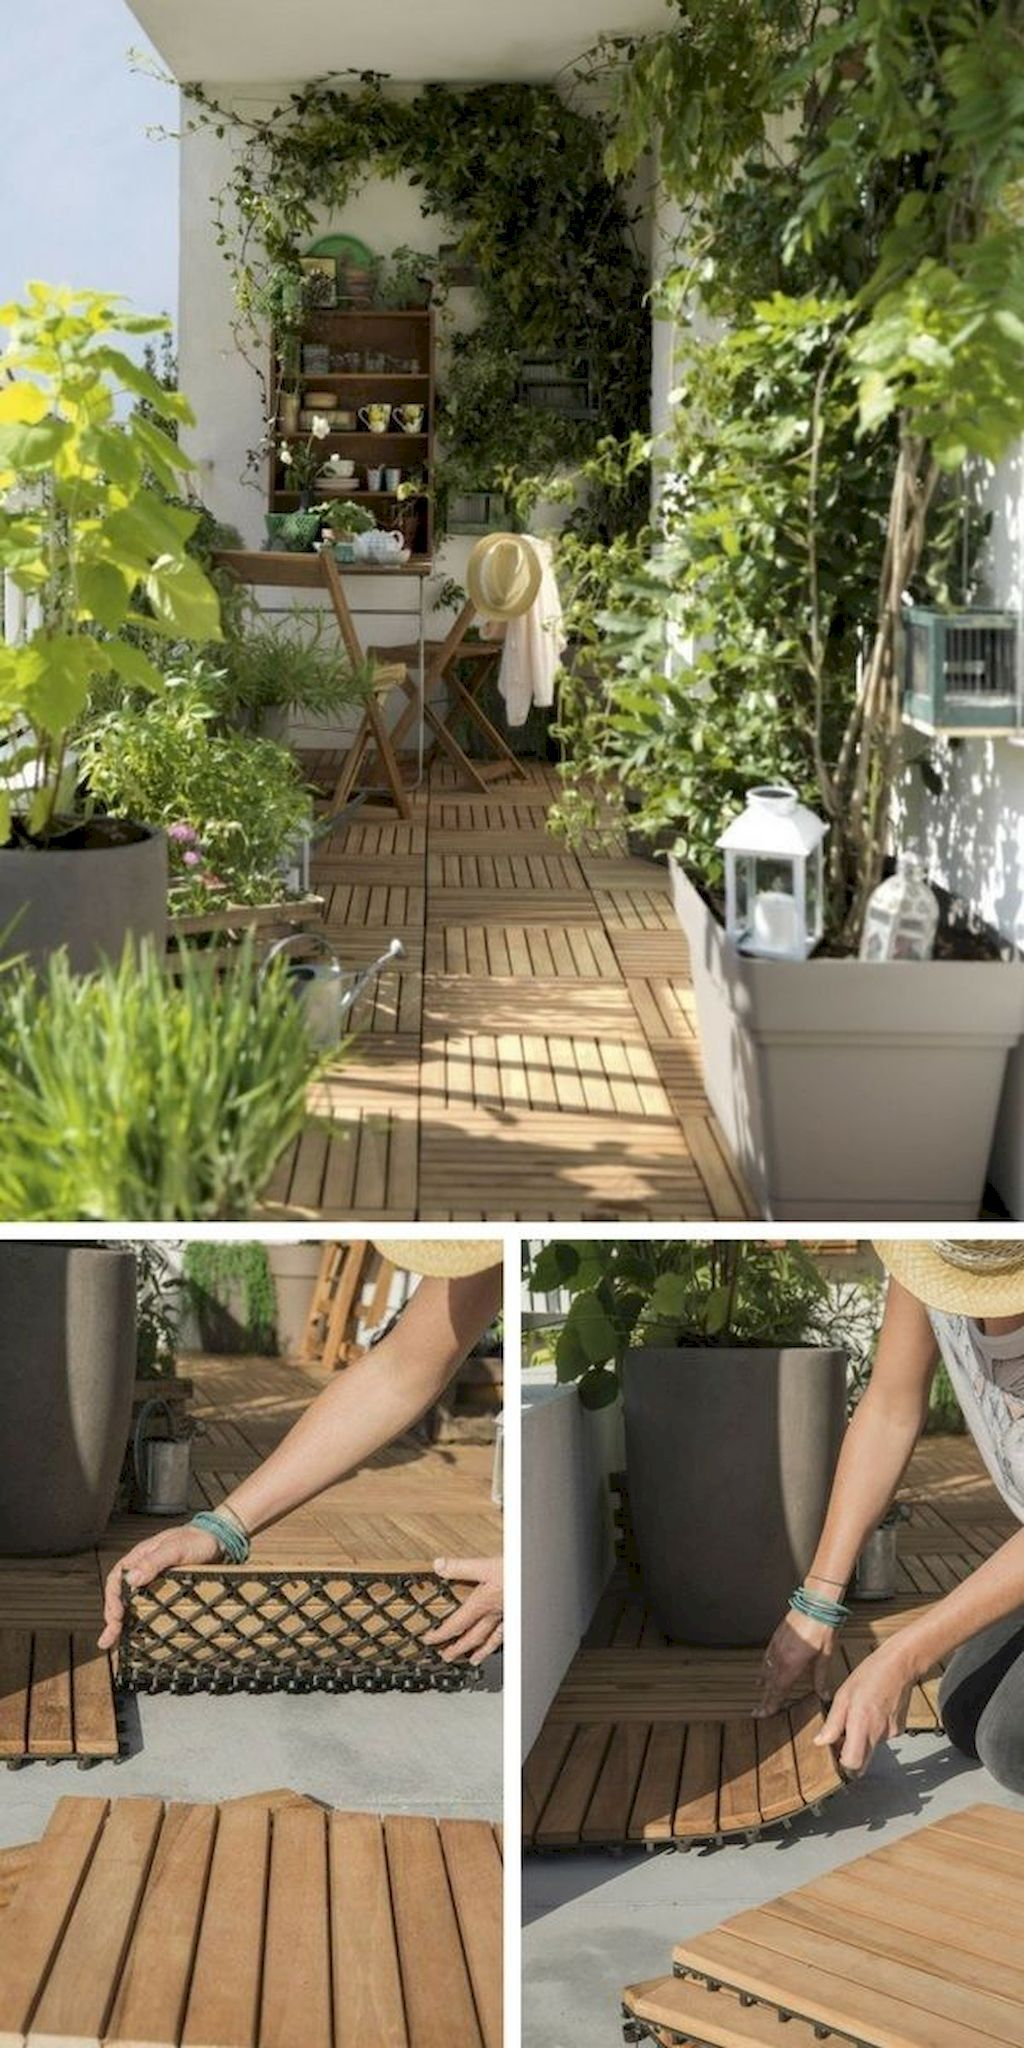 Awesome 40 Small Balcony Garden Ideas For Decorate Your Apartment Https Architeworks Com 40 Small Apartment Balcony Ideas Small Balcony Garden Balcony Decor